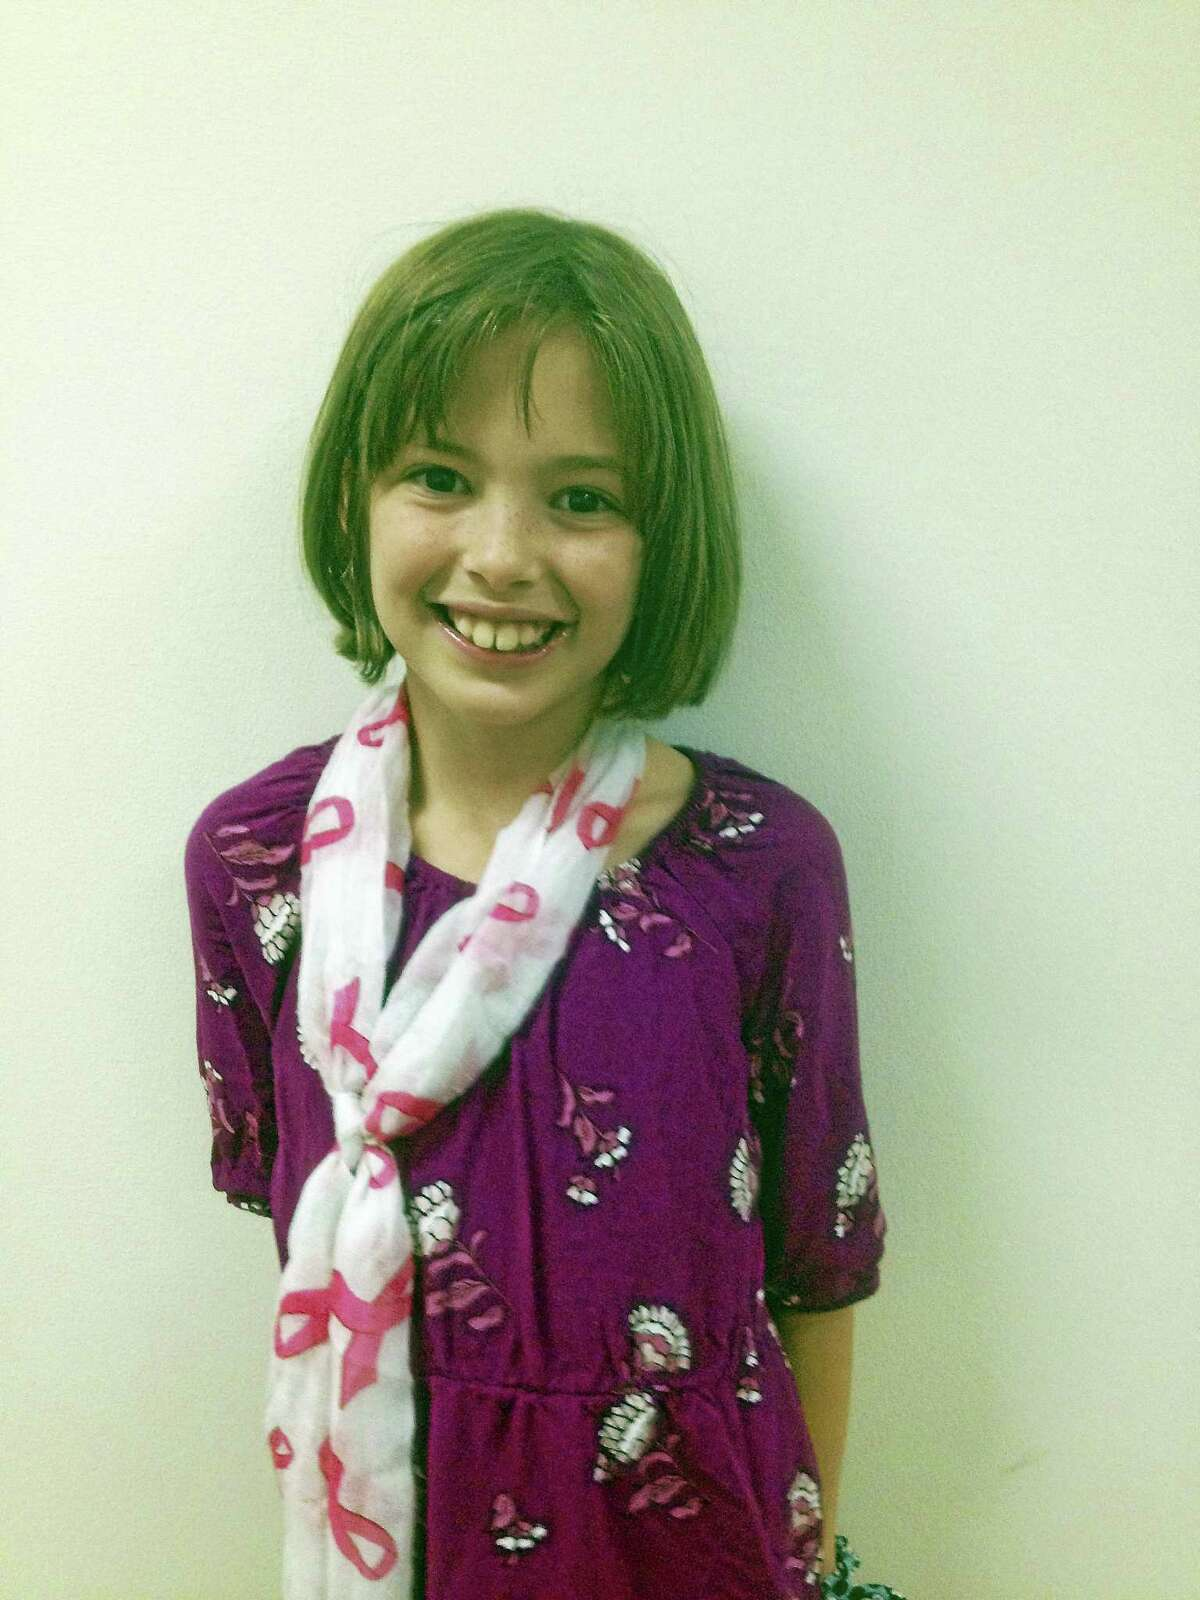 """Cromwell Mayor Enzo Faienza Kellie said Kellie Drew, 9, is """"a young person who cares and gives back to her town,"""" and """"a special individual."""""""